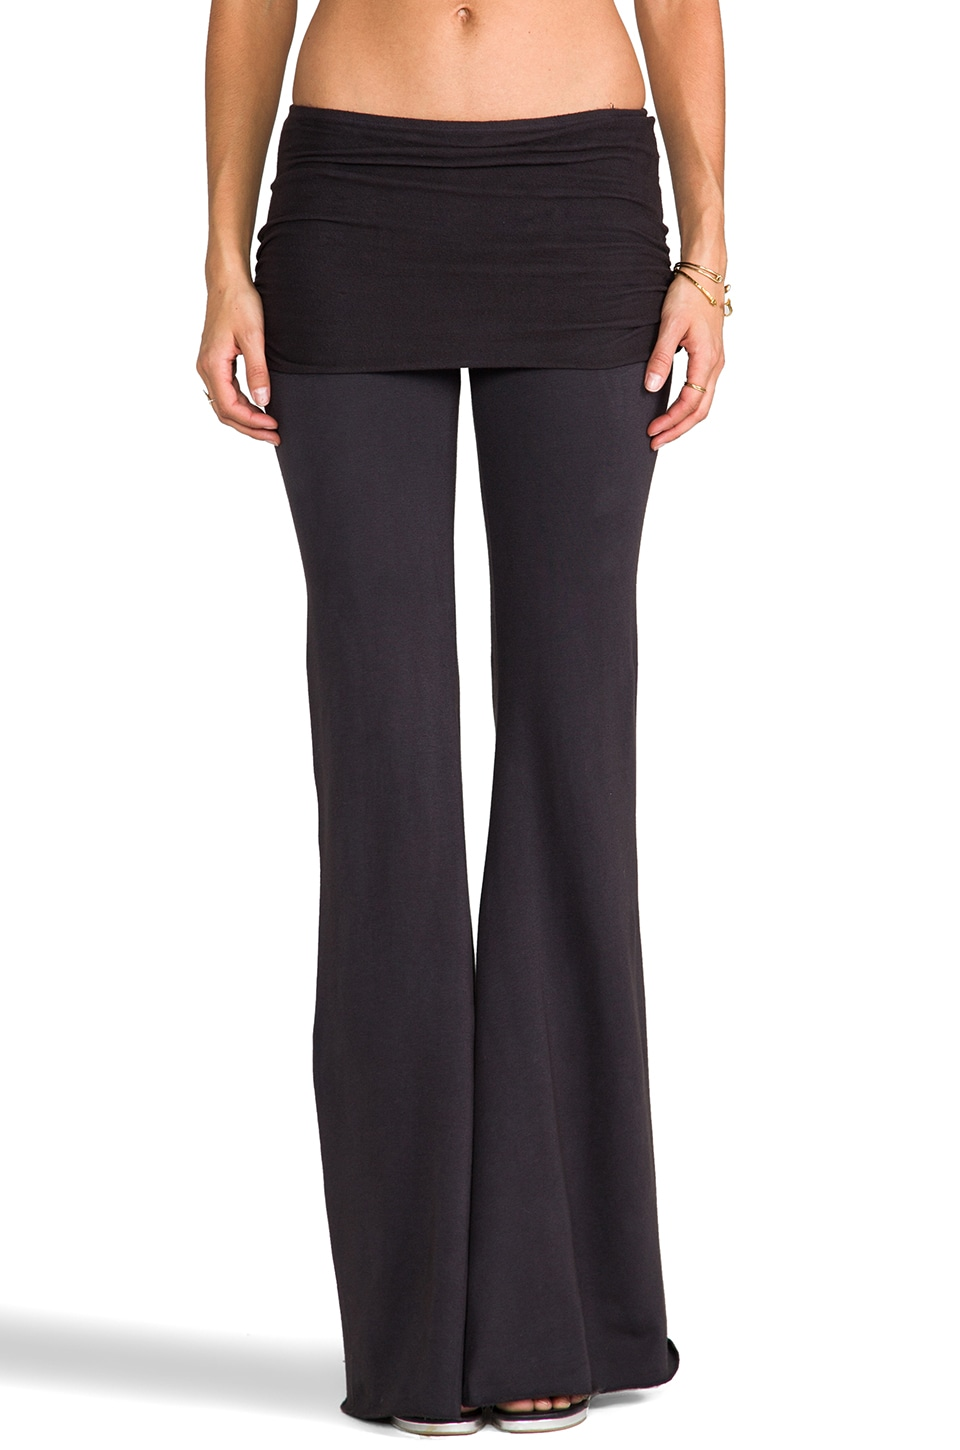 Nightcap Foldover Pant in Charcoal